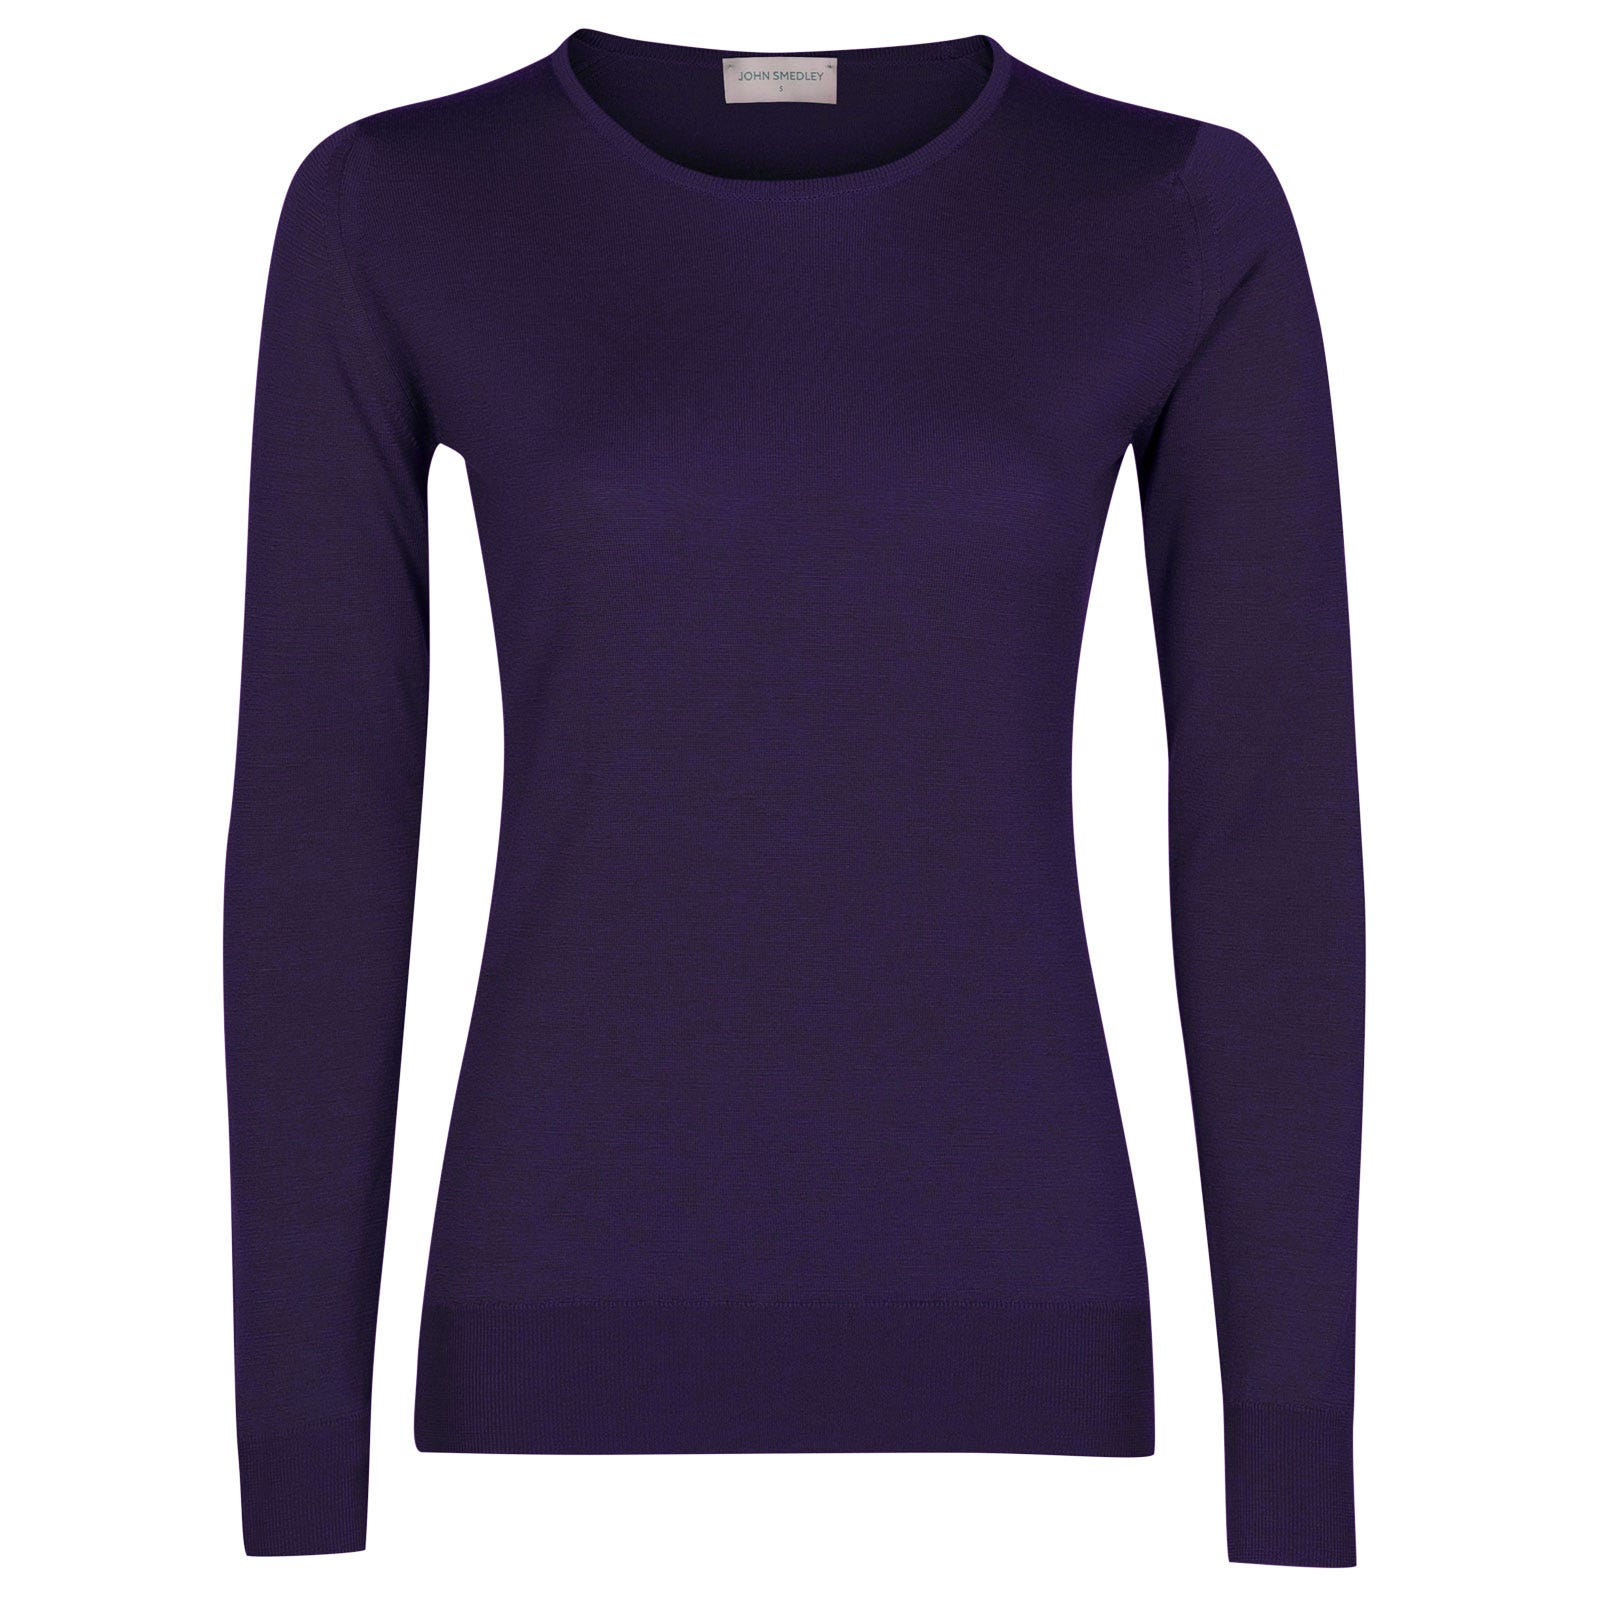 John Smedley geranium Merino Wool Sweater in Elderberry Purple-L